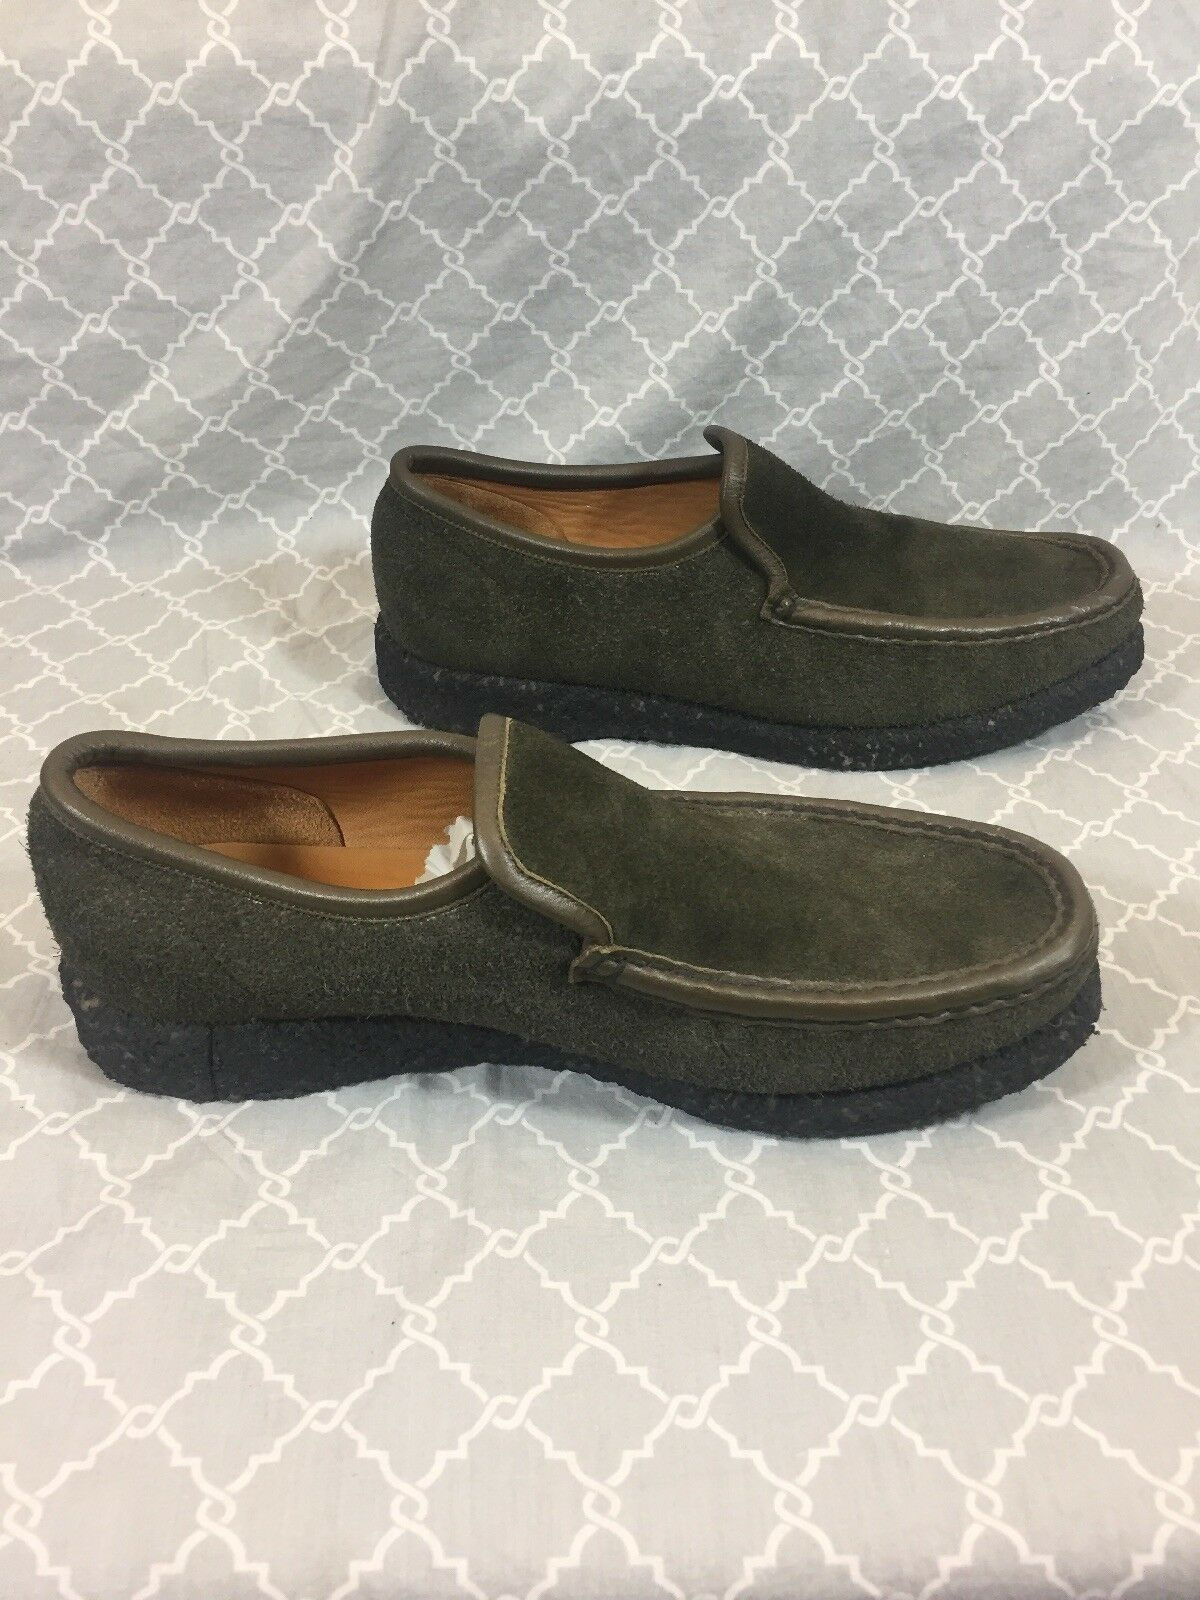 ISSEY MIYAKE MEN Slip On Green Suede shoes Size 8 1 2